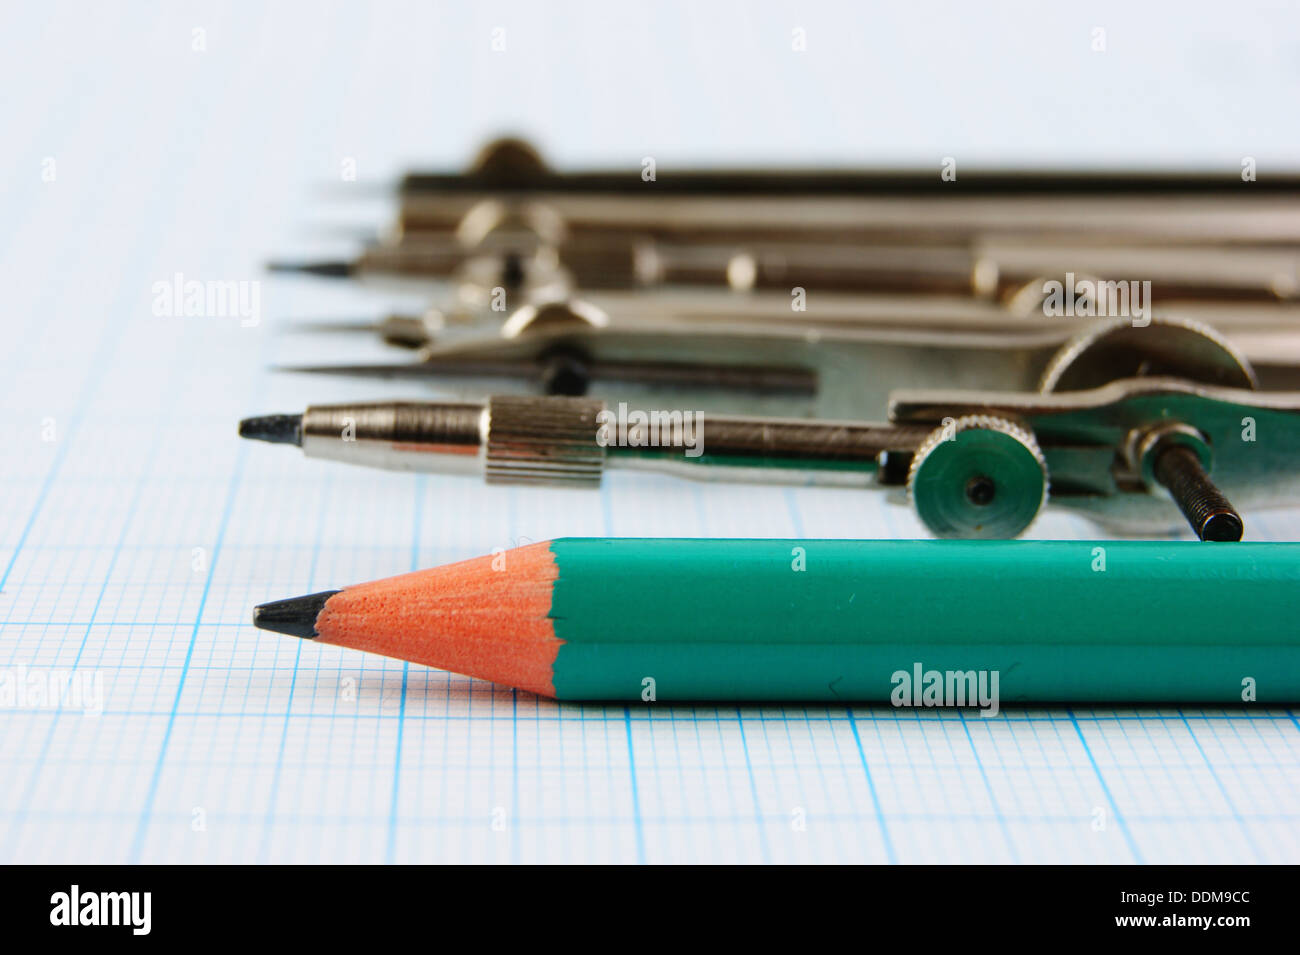 old drawing tools on graph paper stock photo 60068076 alamy